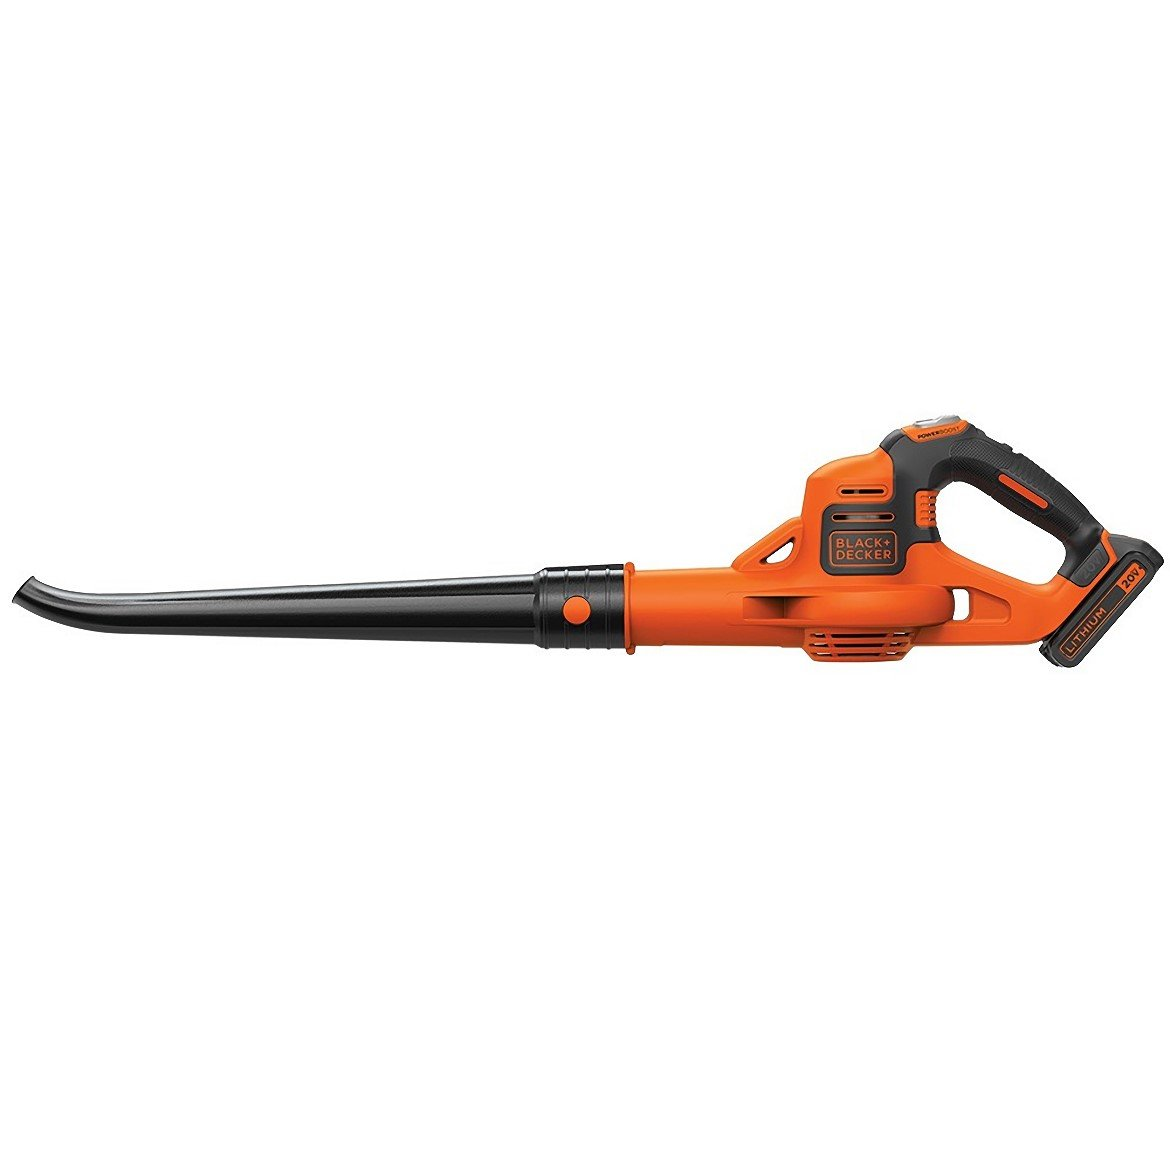 Front view of the Black and Decker LSW321 Leaf Blower